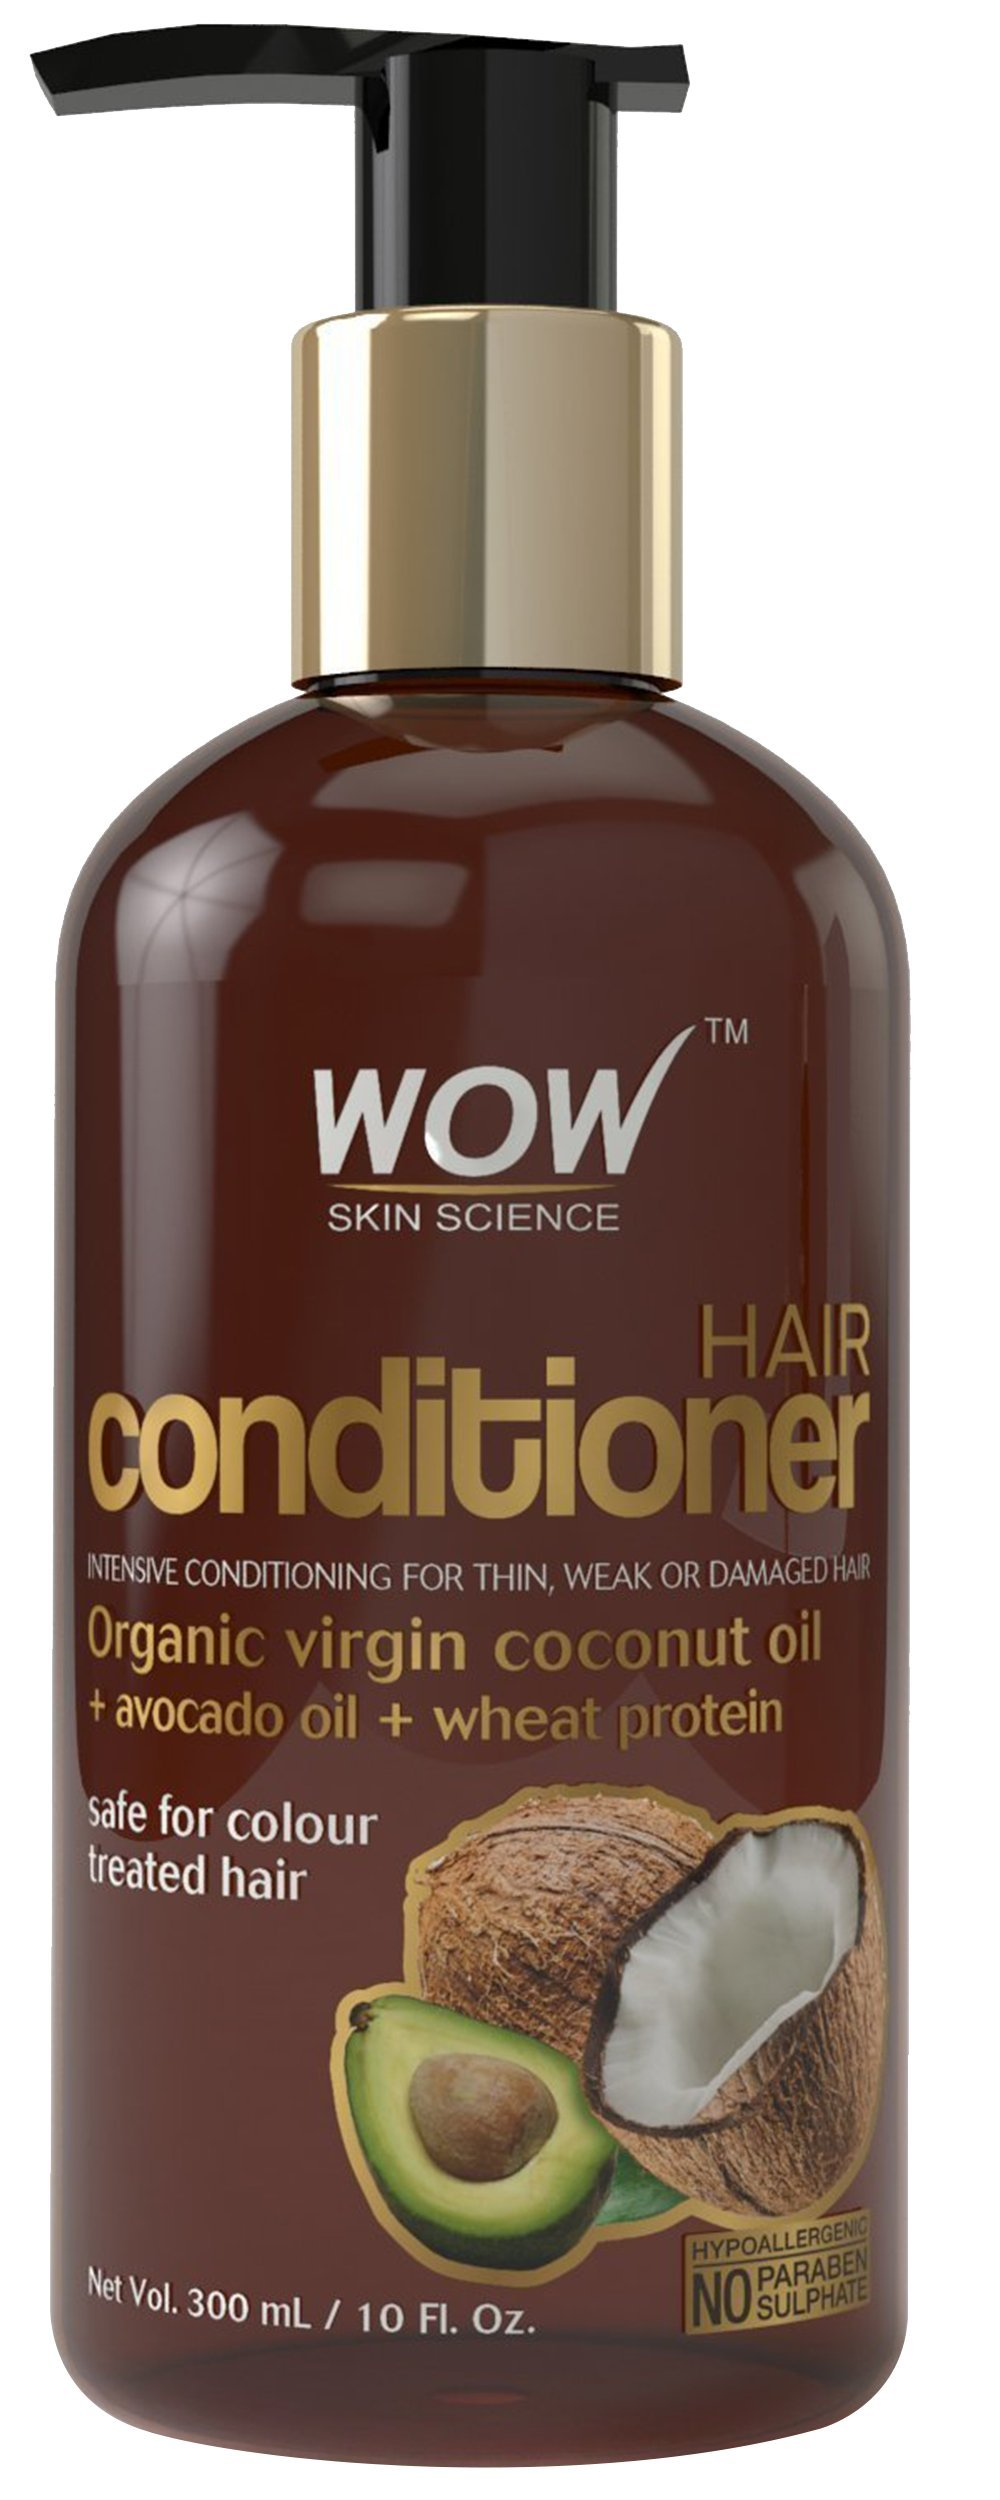 WOW Coconut No Sulphate and Parabens Hair Conditioner, 300ml product image